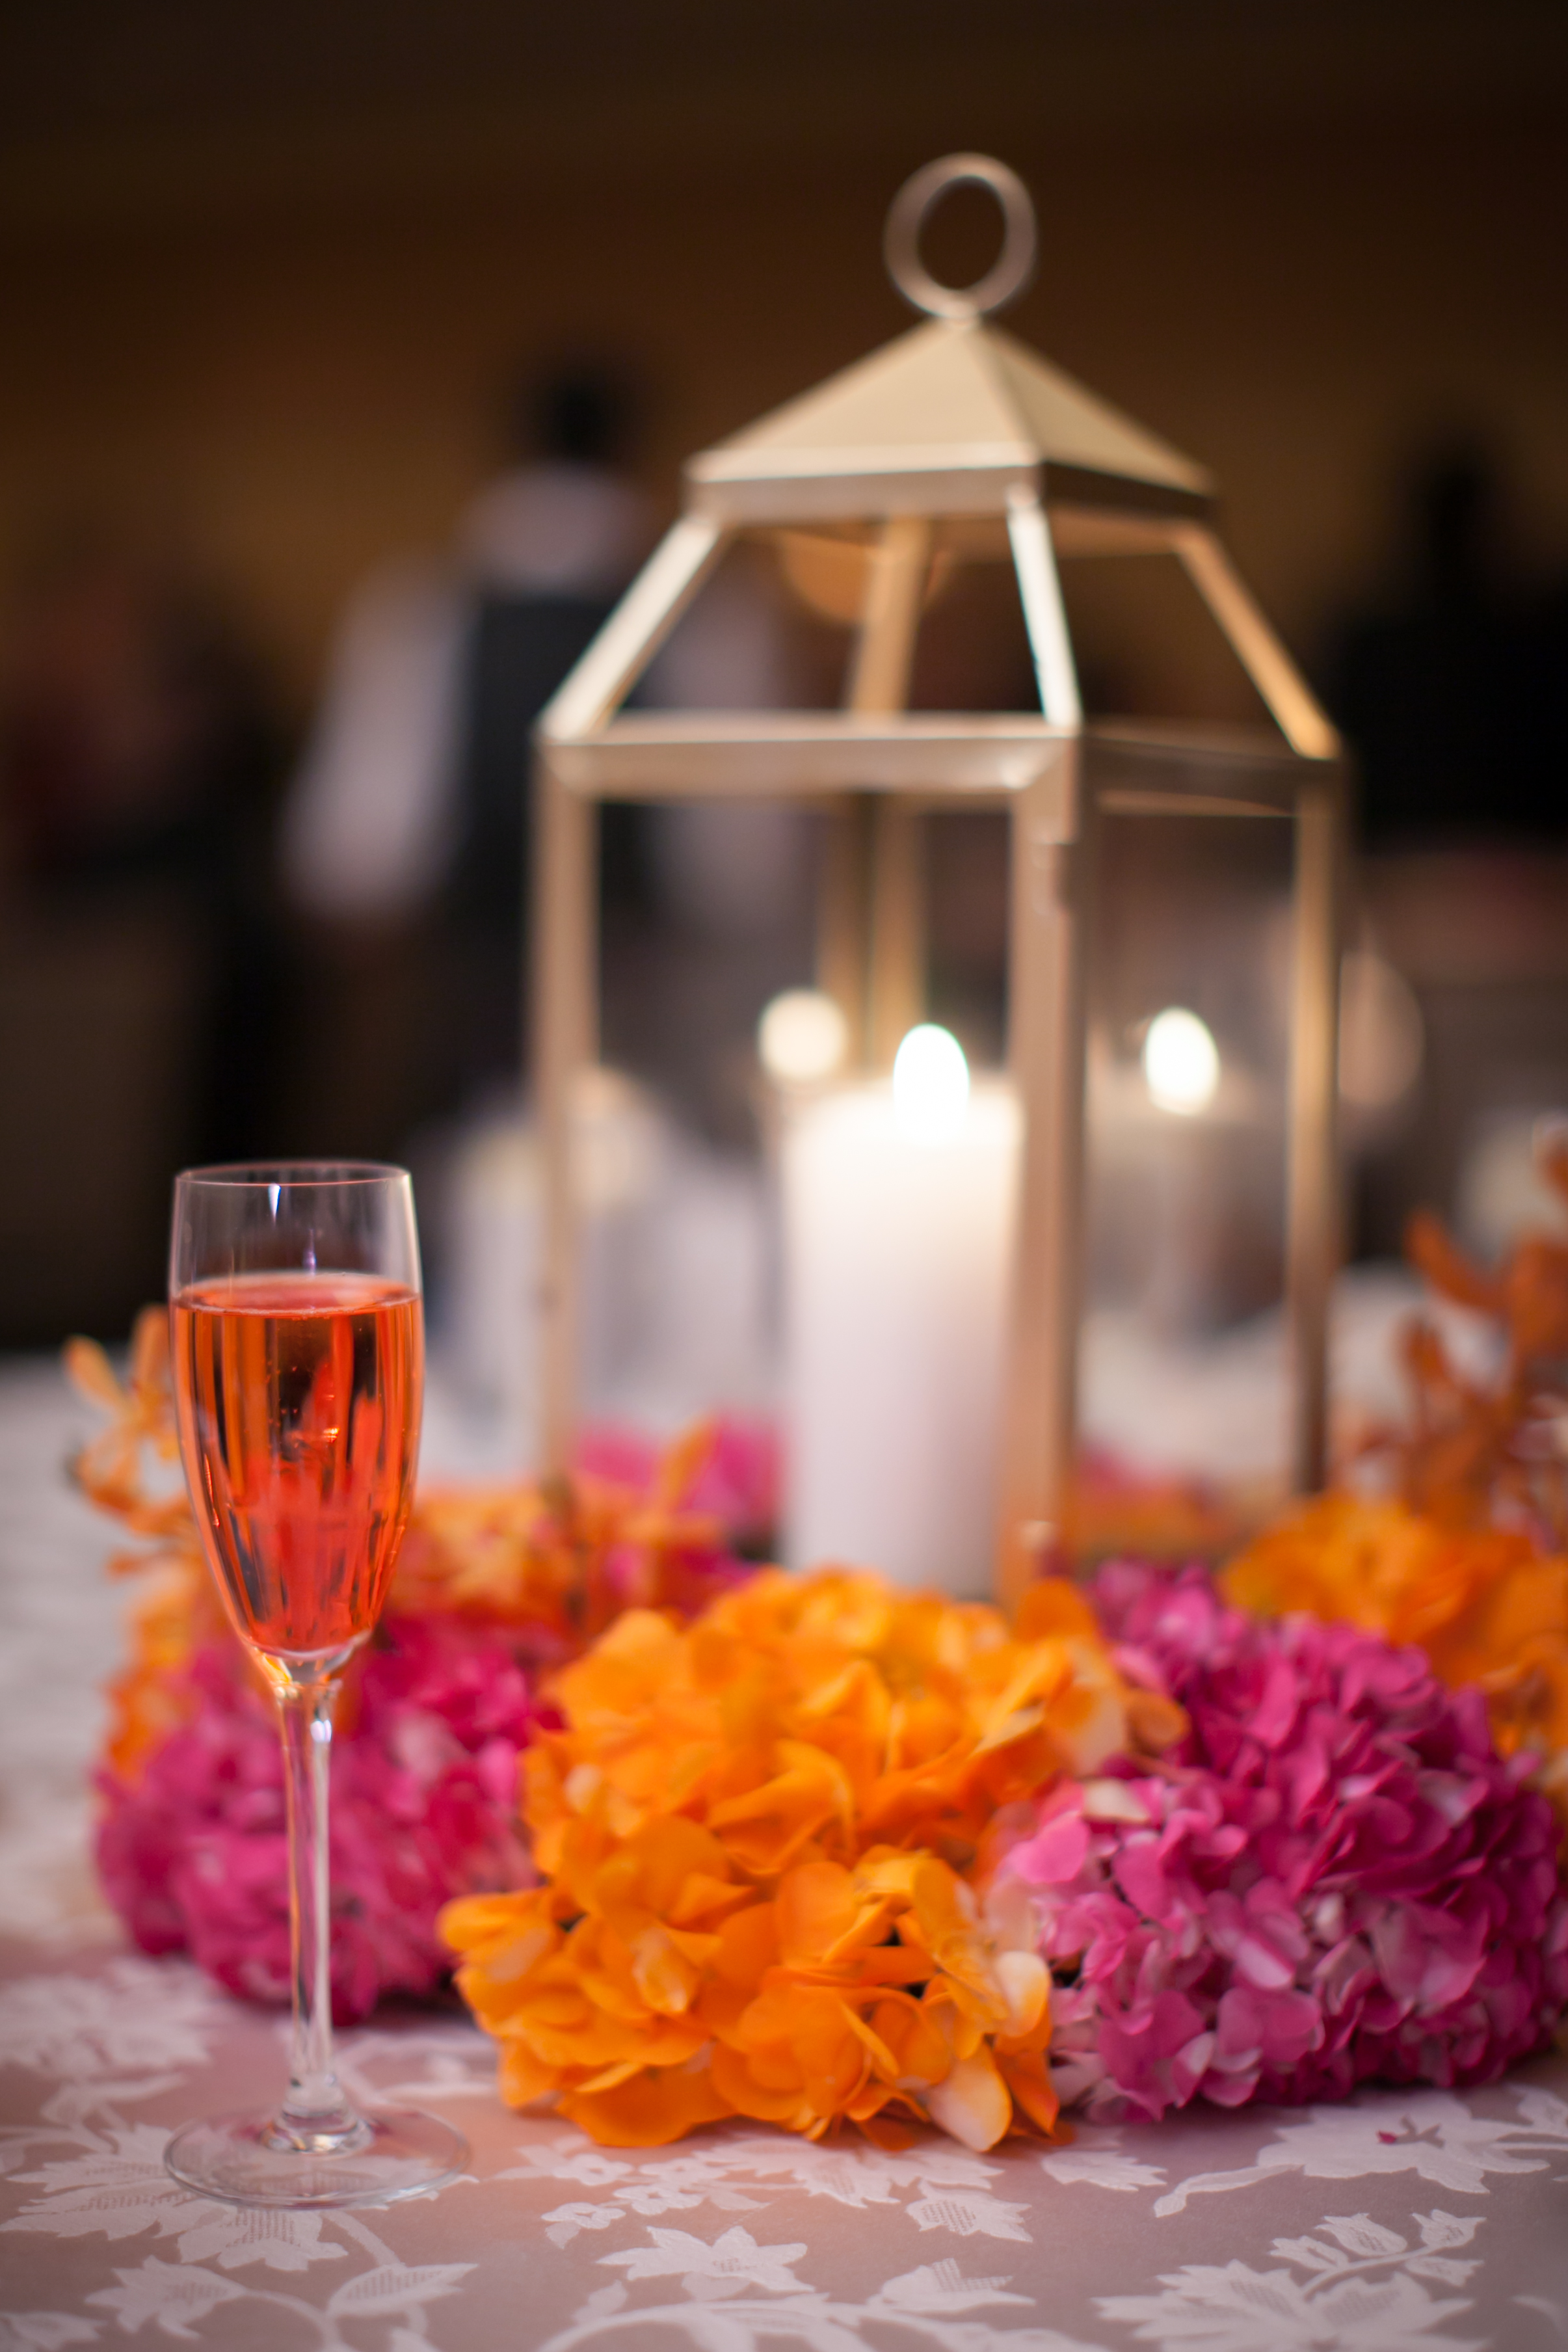 Candle and lantern wedding decor bright occasions for Marriage decorative items